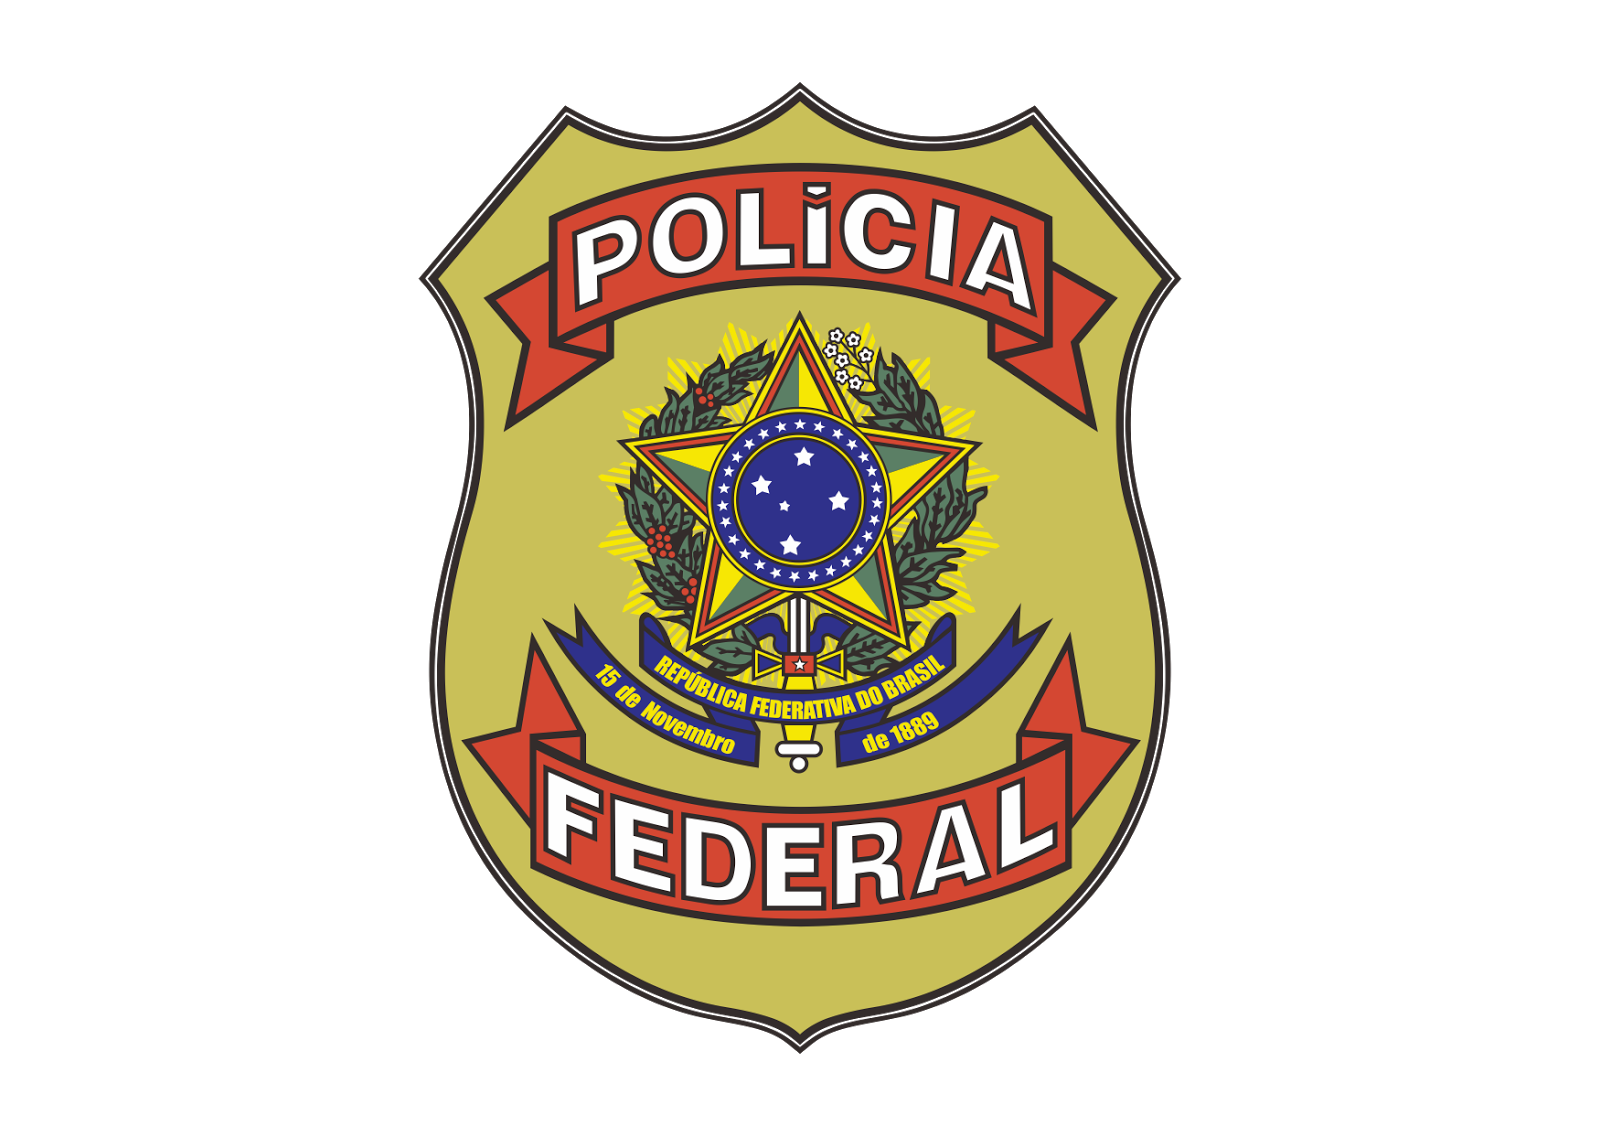 logo policia federal png 4 png image